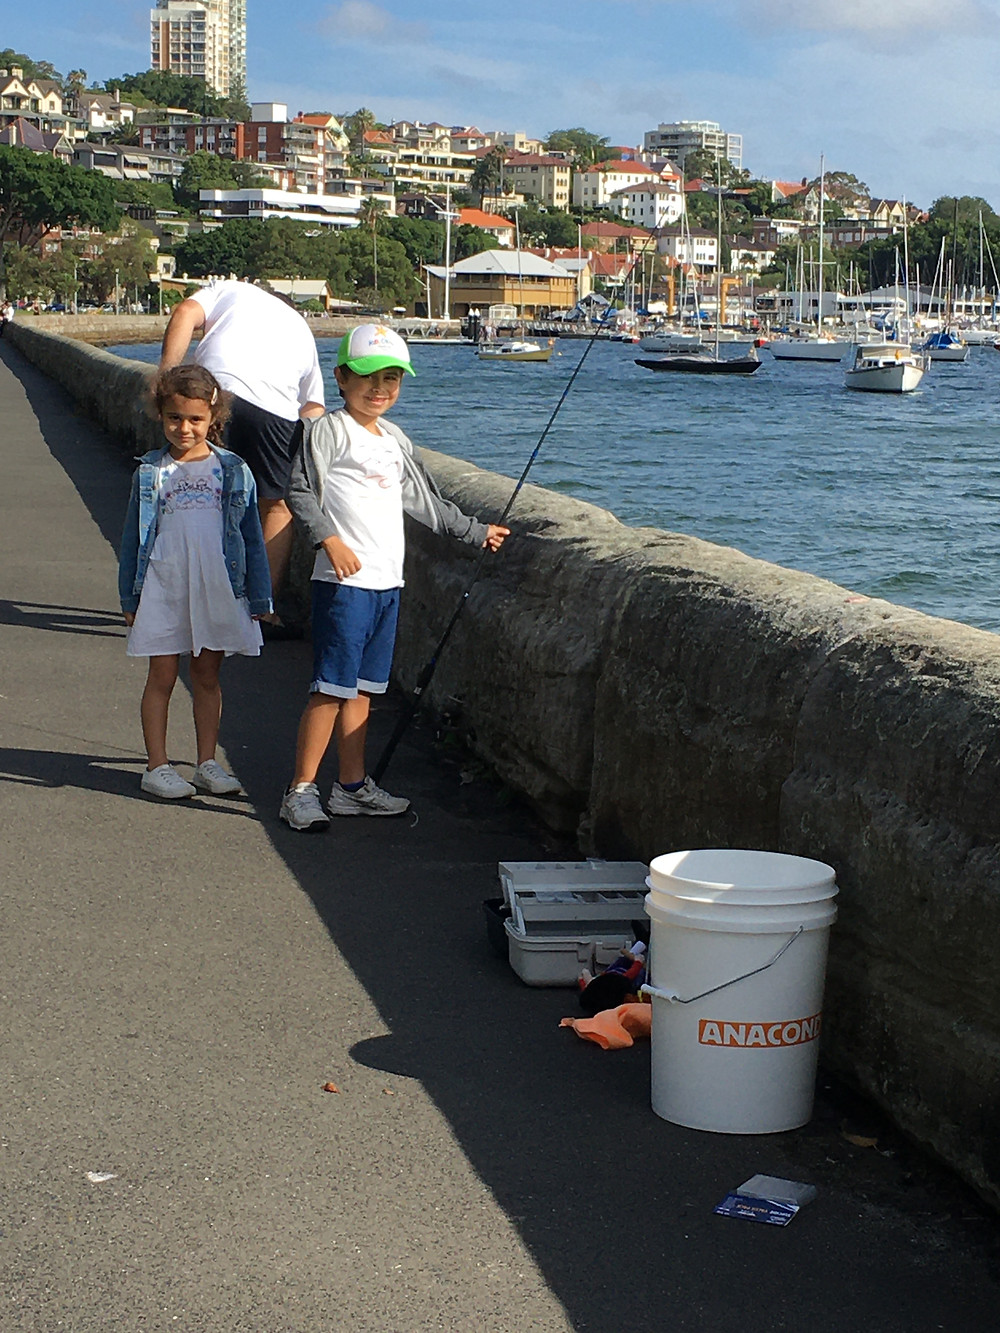 A father, son and daughter fishing by the Sea Wall